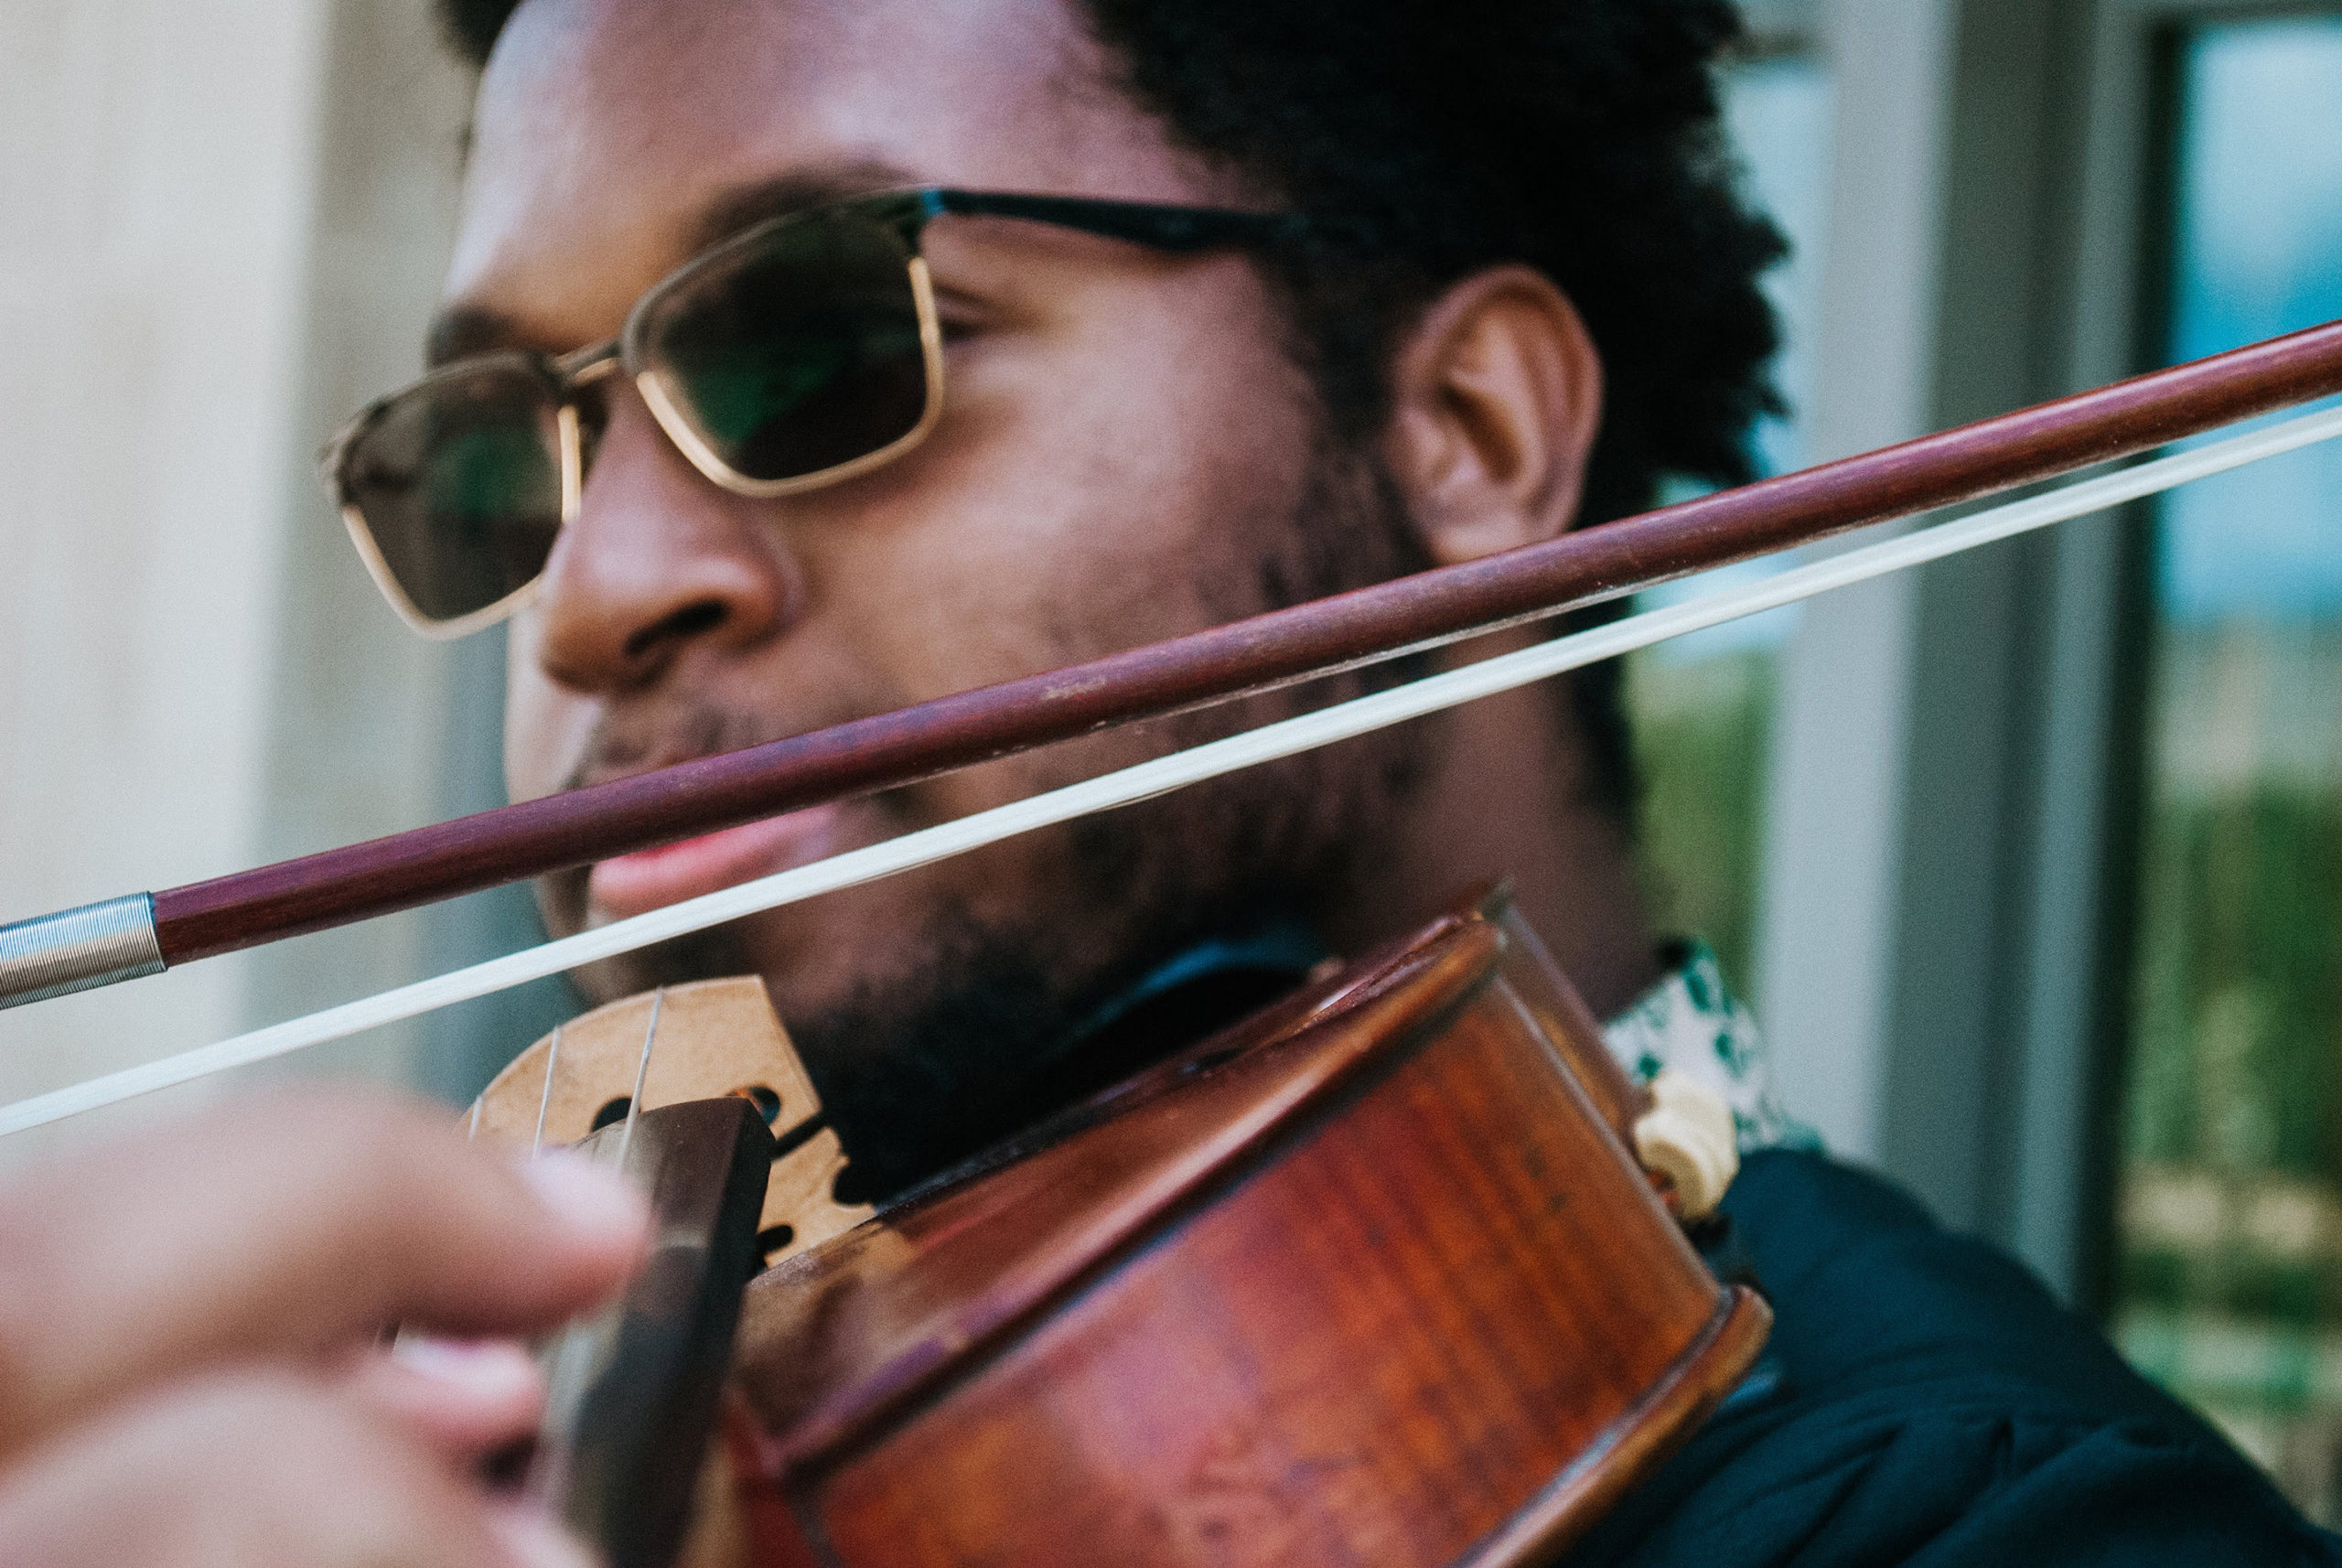 Wilfred pictured close up, playing the viola, with sunglasses on